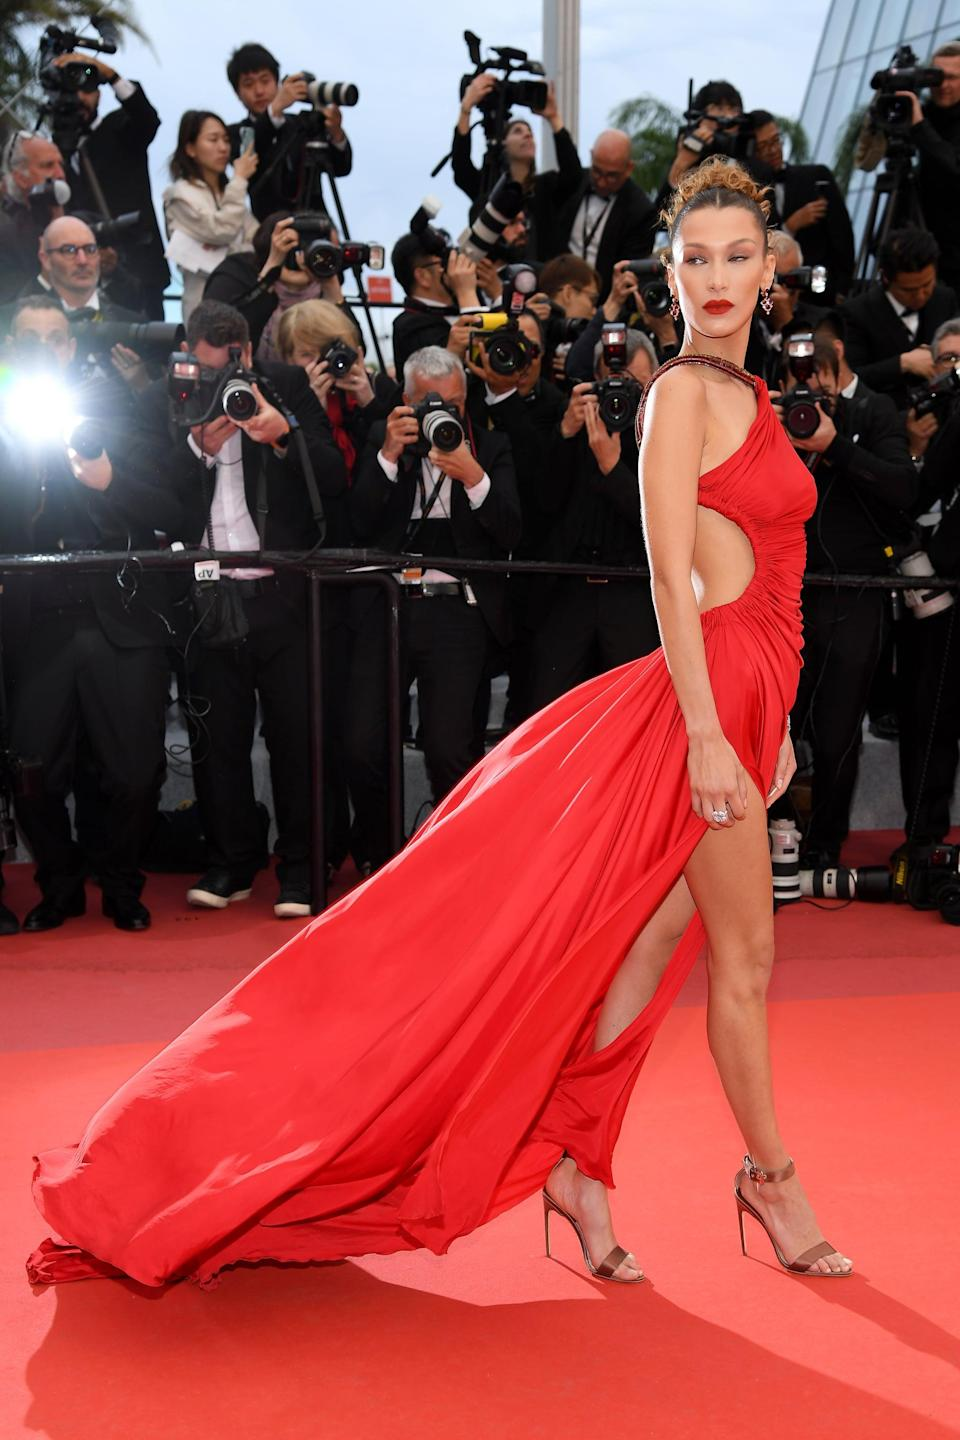 Bella Hadid Wearing a Red Cutout Roberto Cavalli Dress at Cannes in 2019